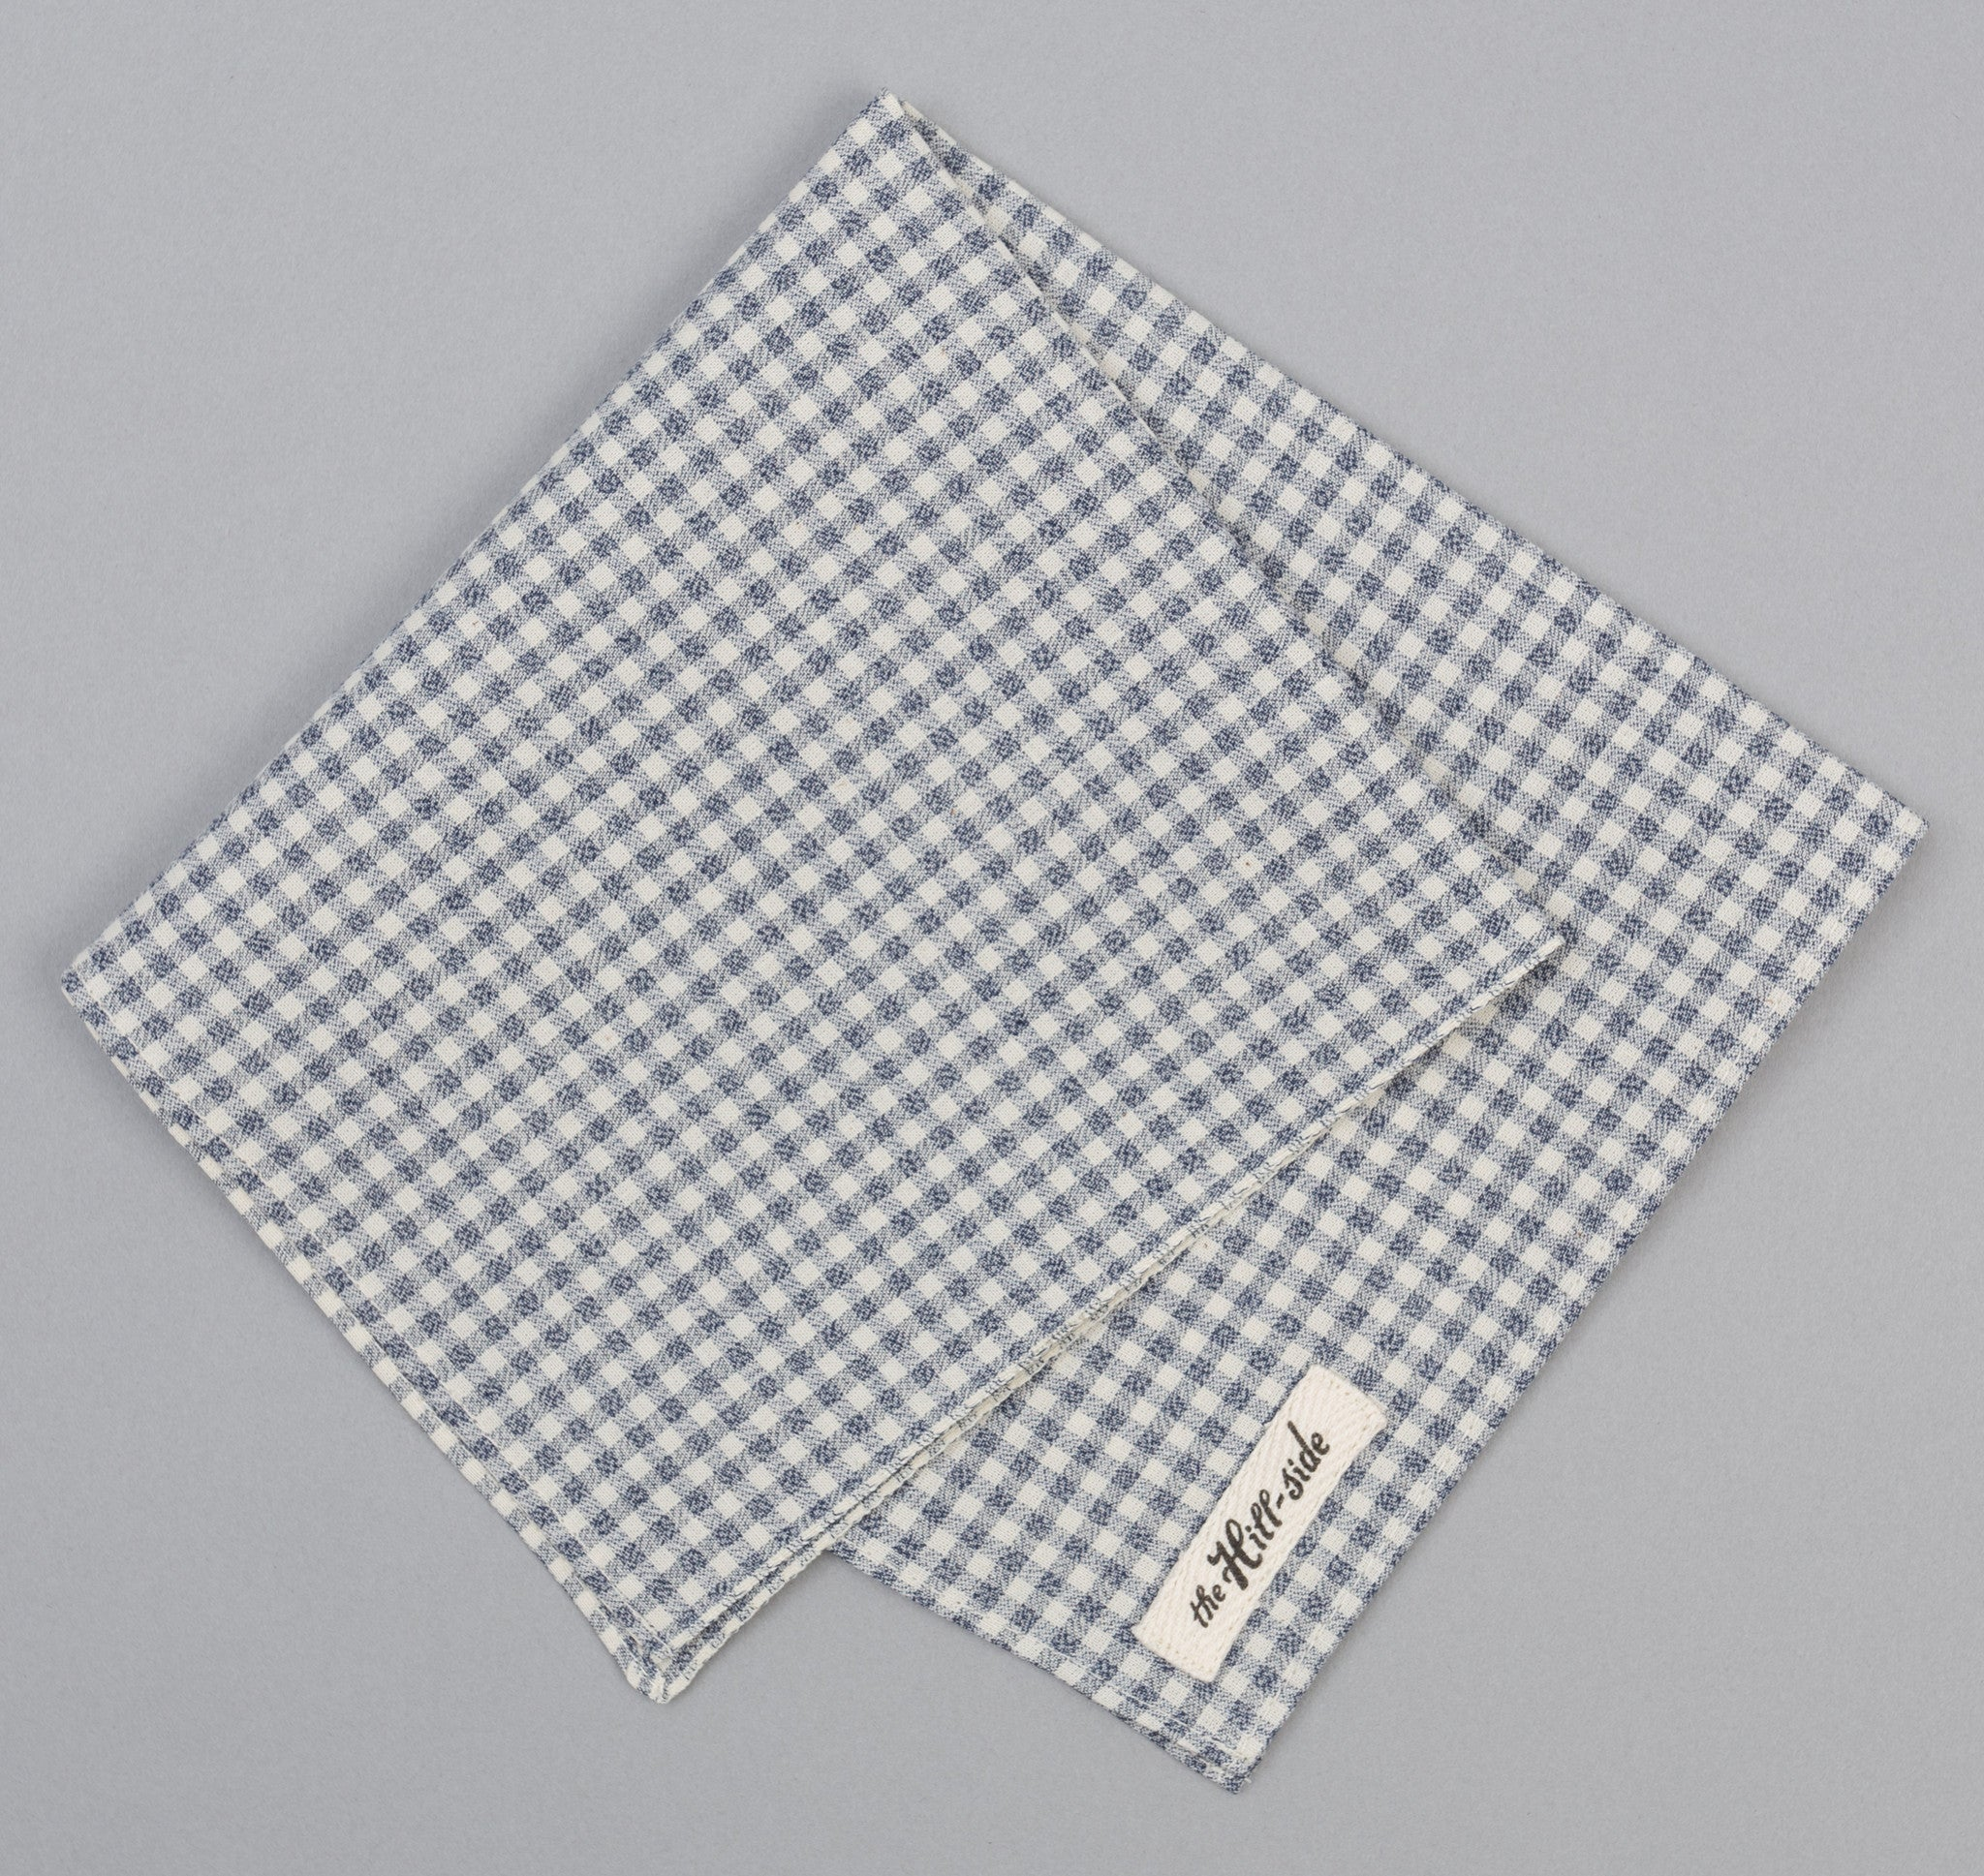 The Hill-Side - Selvedge Covert Gingham Chambray Bandana, Indigo / White - BA1-329